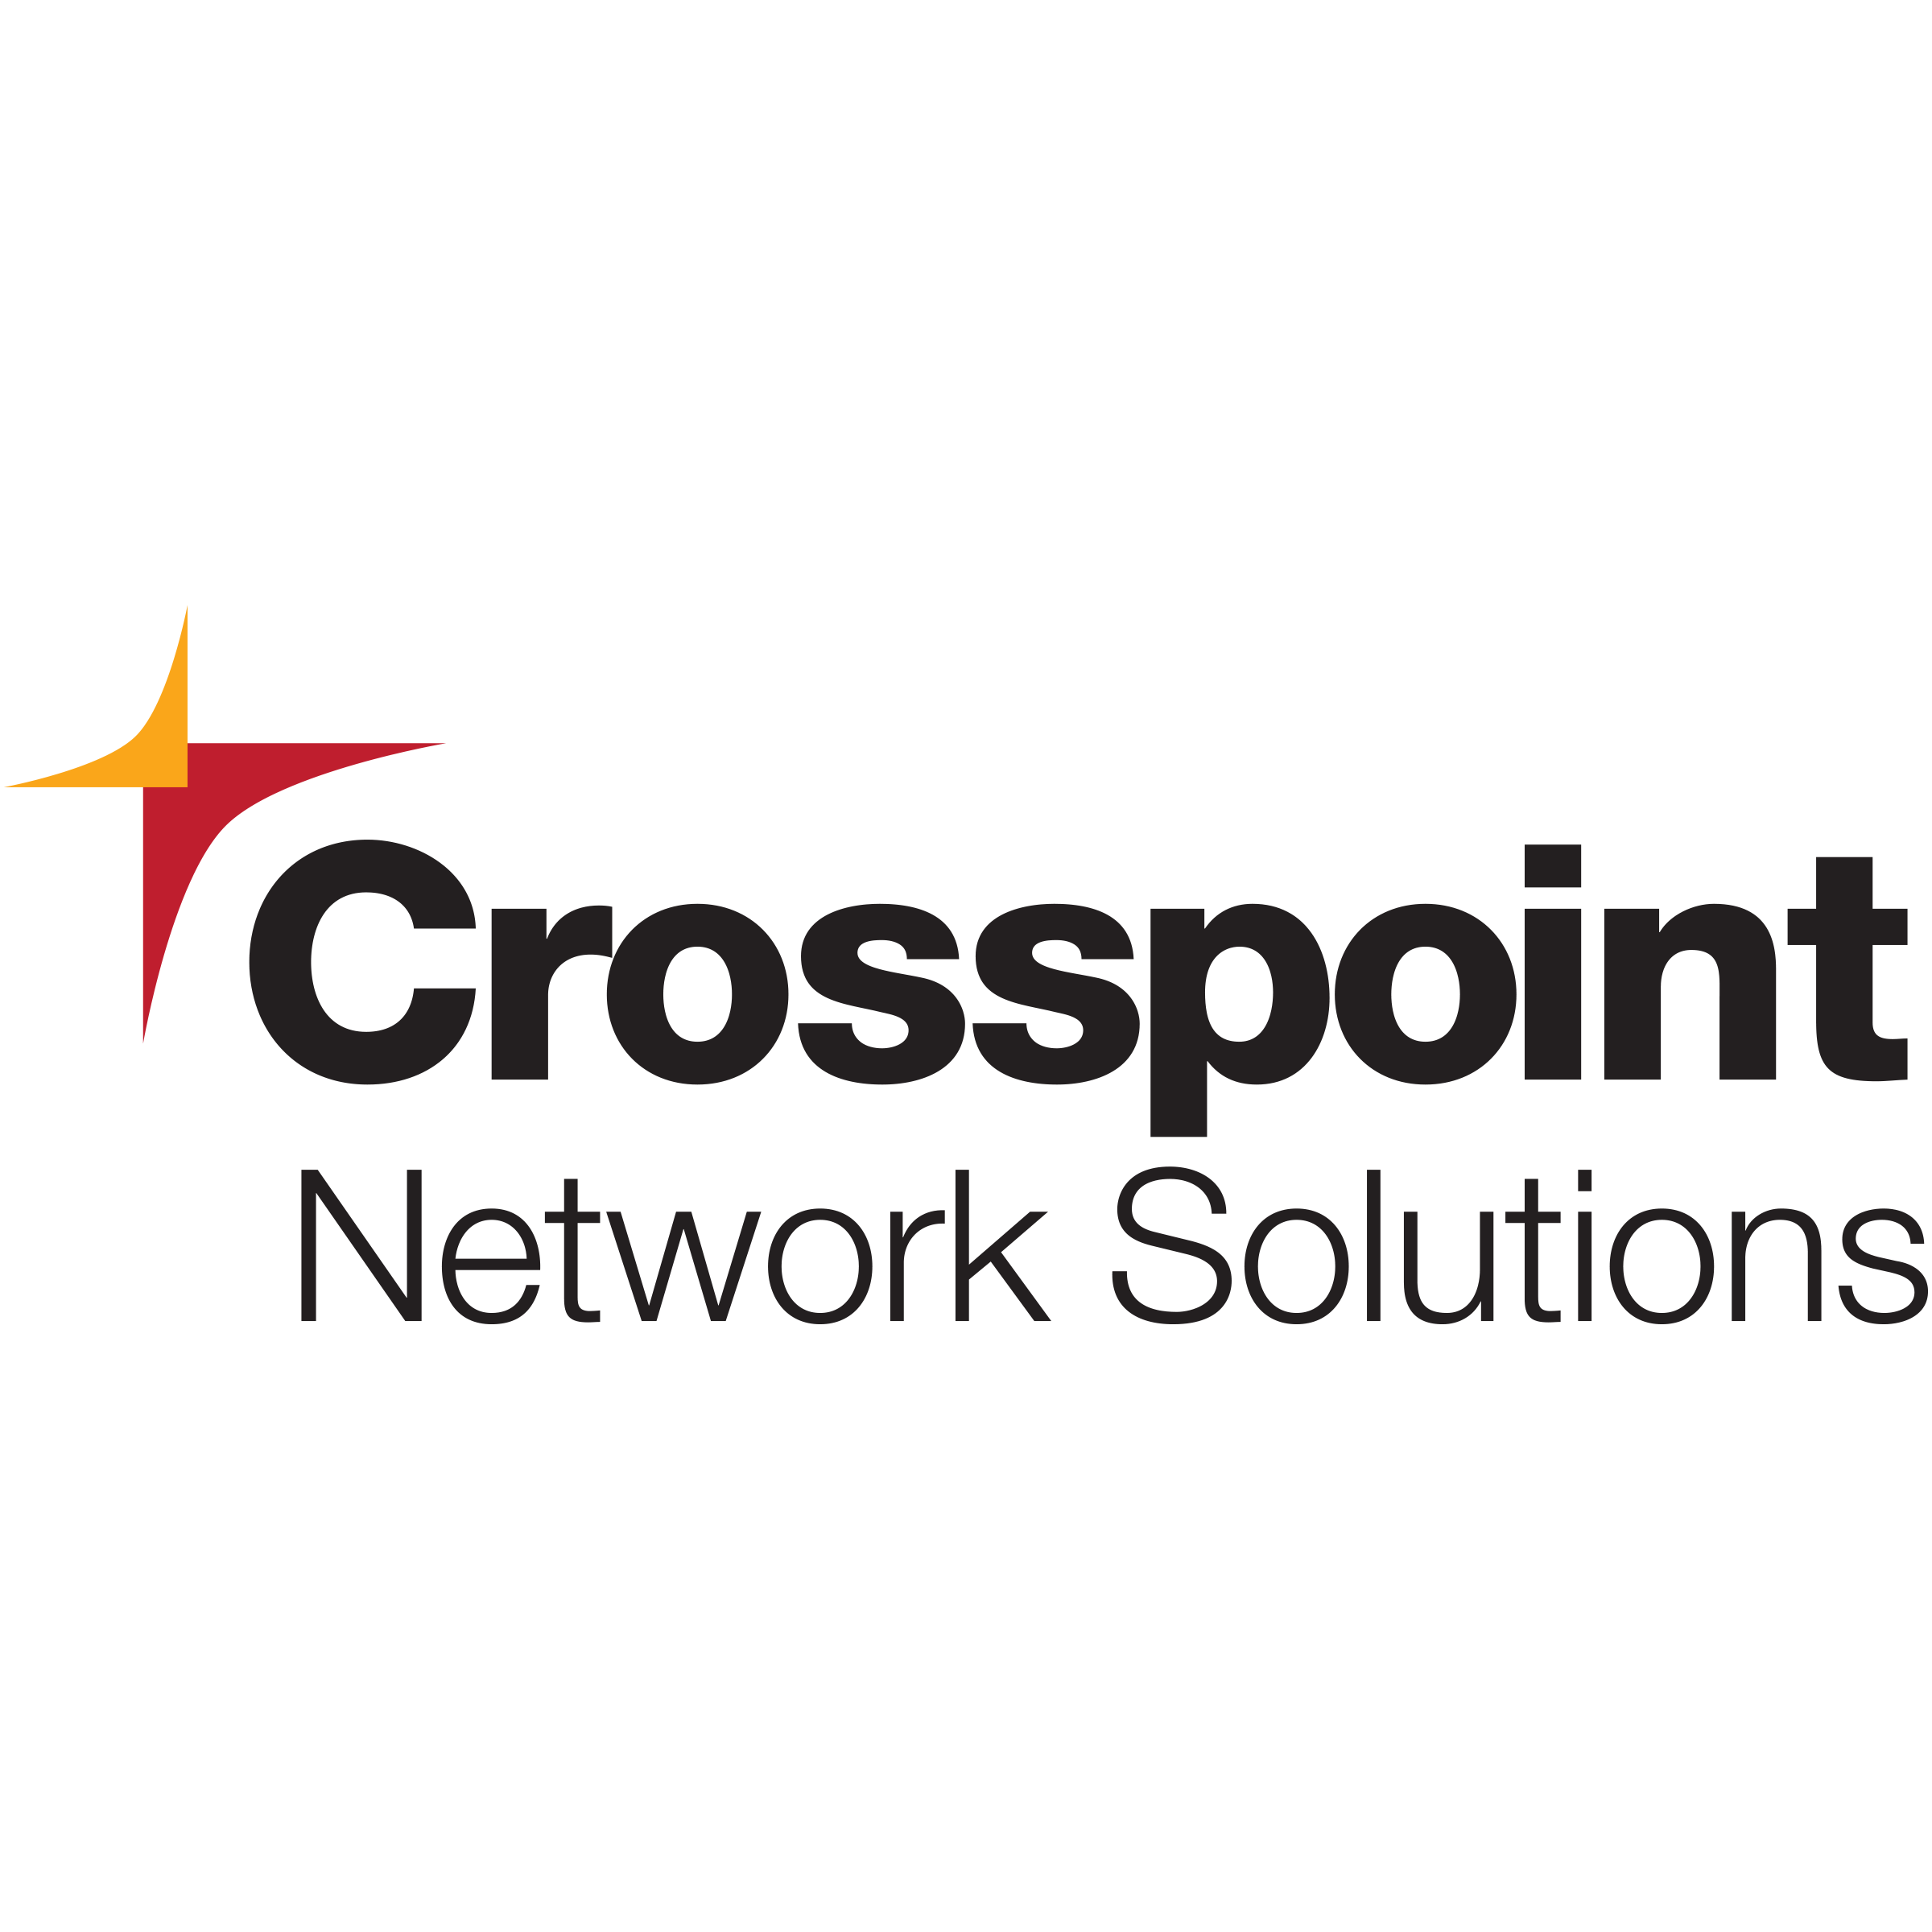 Crosspoint Network Solutions